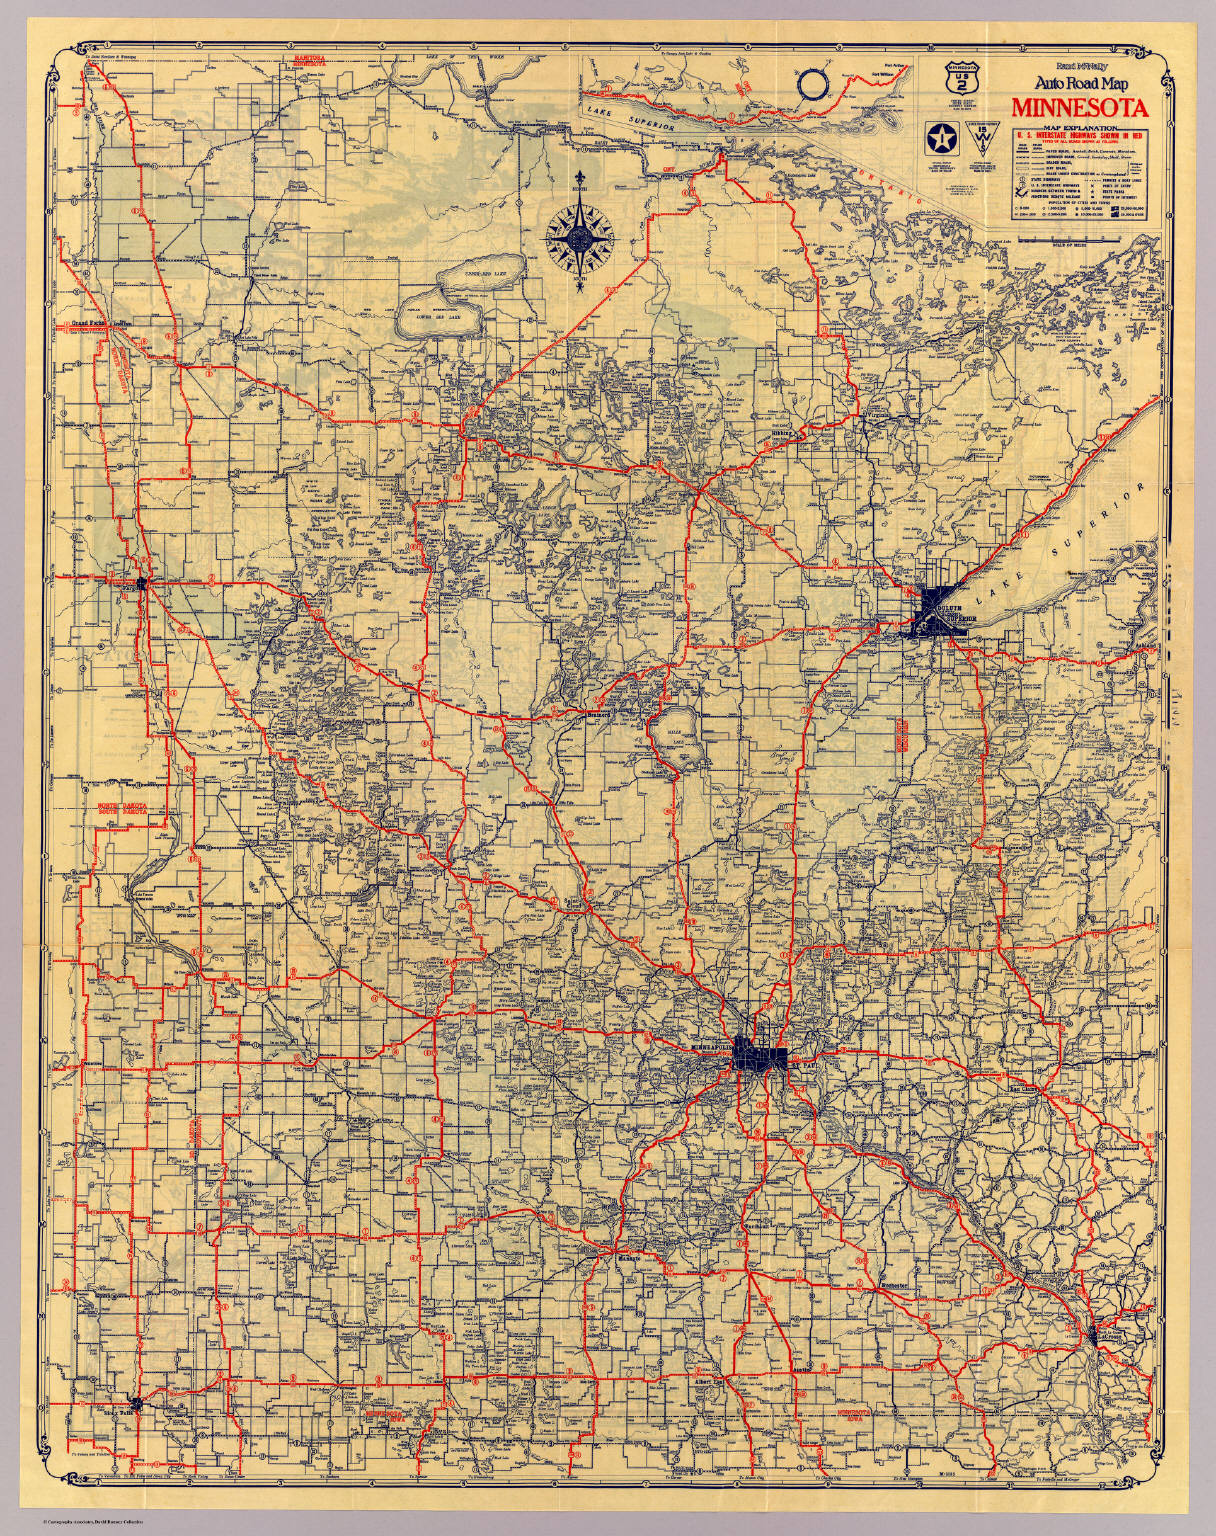 Minnesota road map - David Rumsey Historical Map Collection